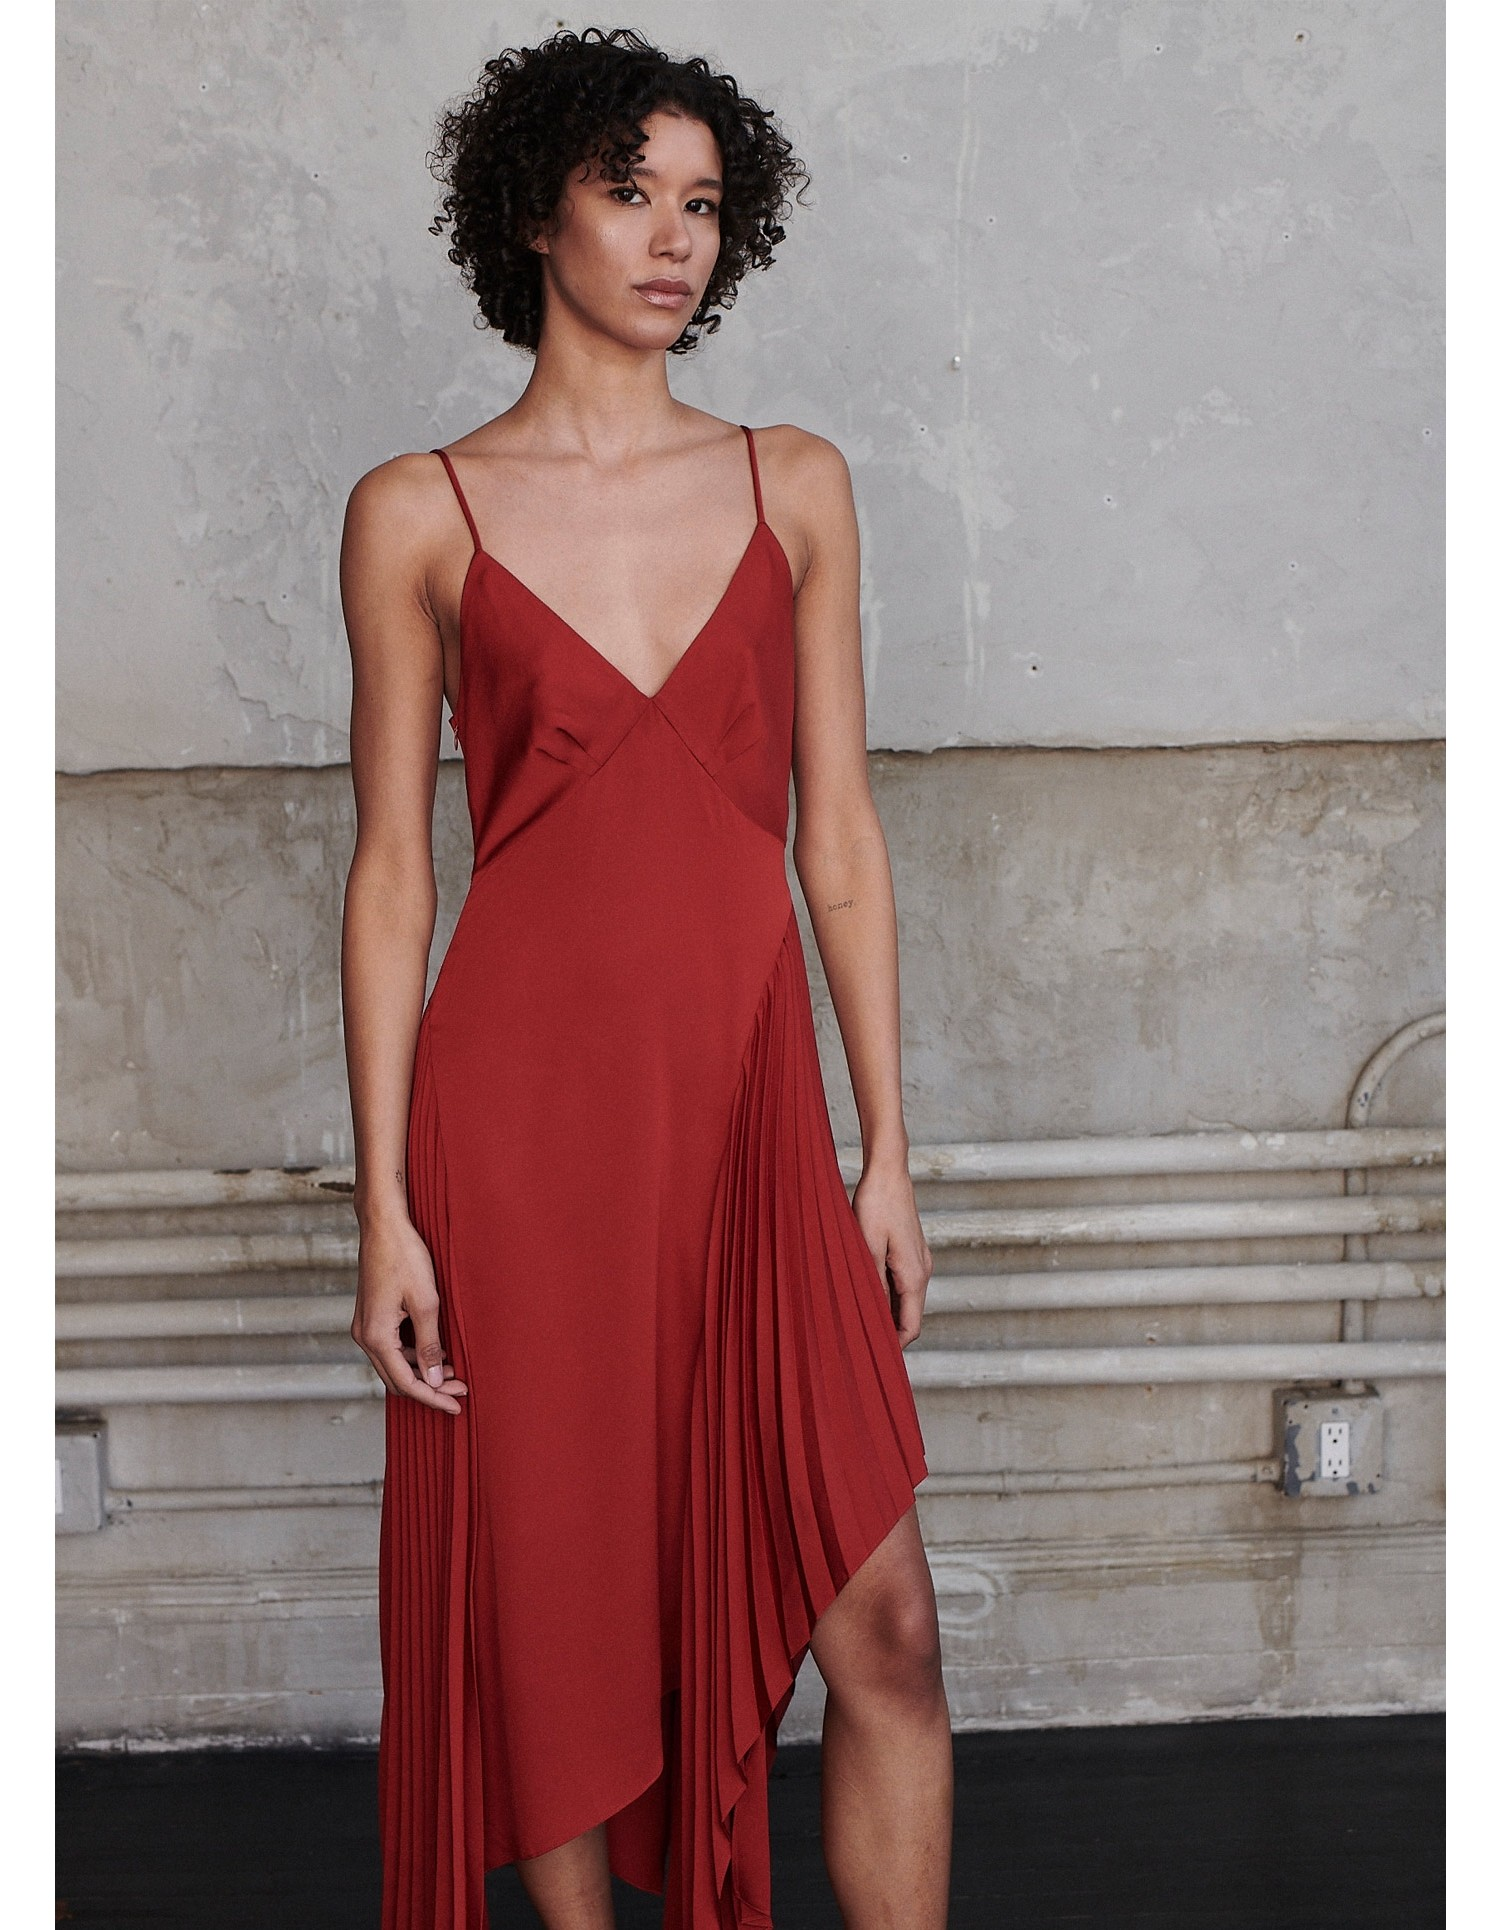 MONSE Pleated Slip Dress in Rust on Model Front View